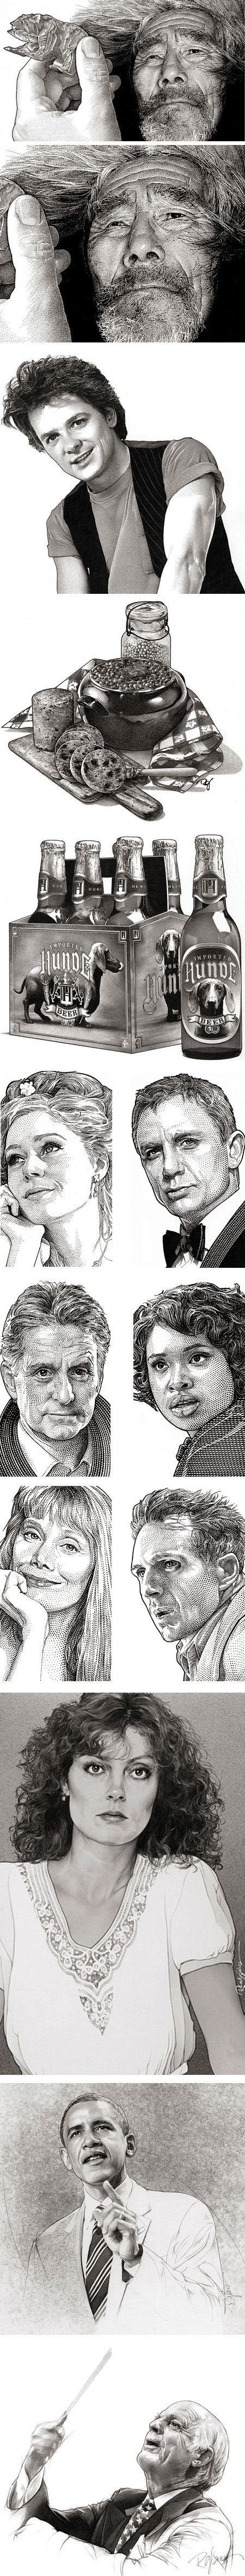 Randy Glass, pen and ink, stipple, portraits, WSJ hedcuts